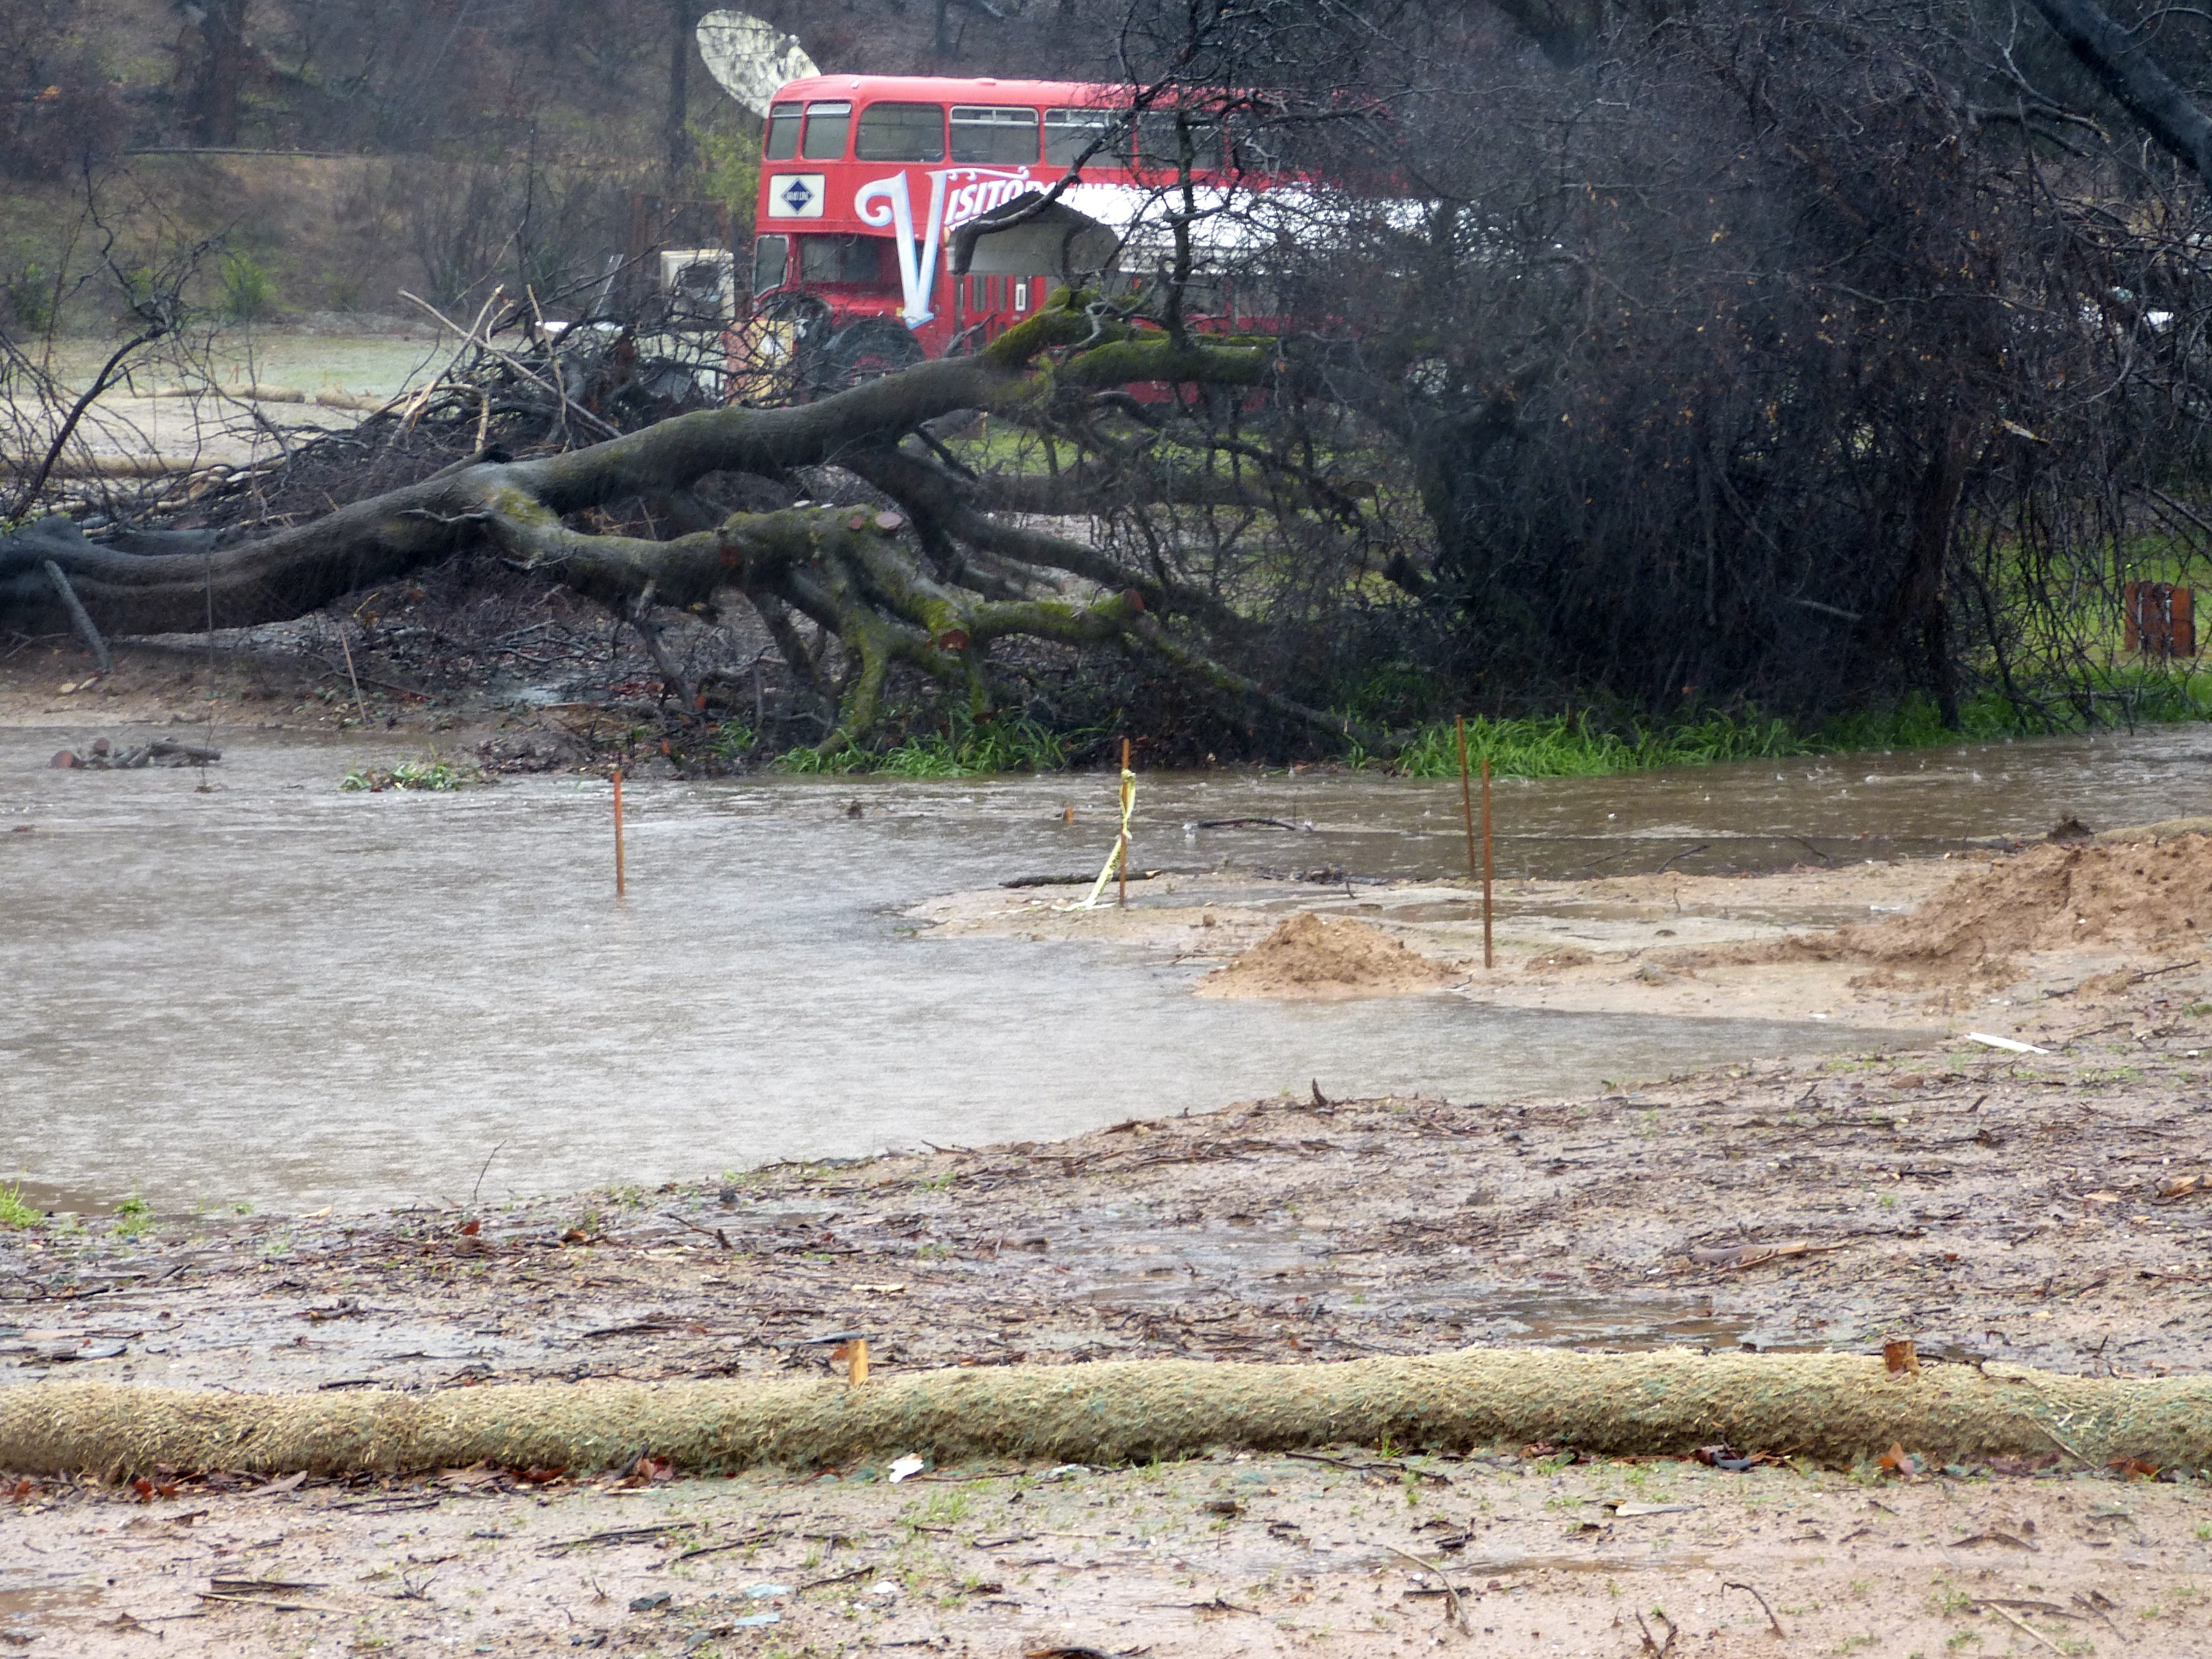 A creek flooded its banks Tuesday in the town of Shasta.